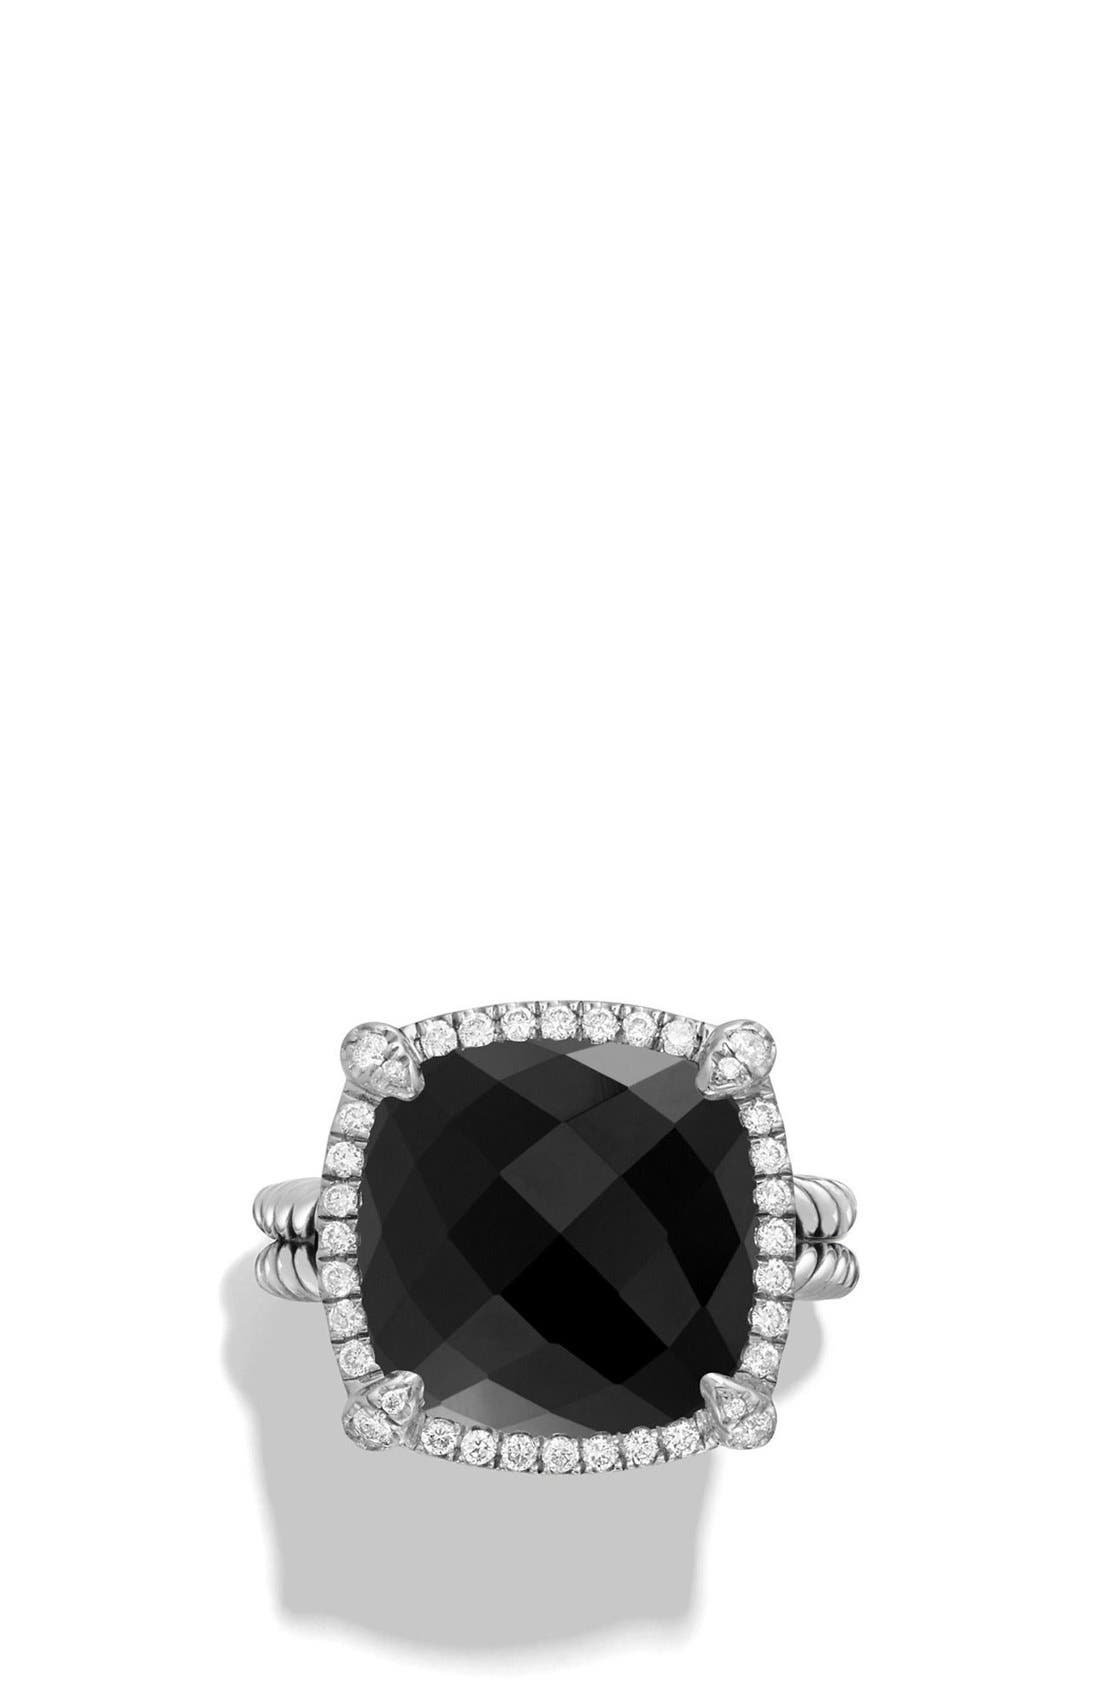 'Châtelaine' Large Pavé Bezel Ring with Diamonds,                             Alternate thumbnail 2, color,                             BLACK ONYX